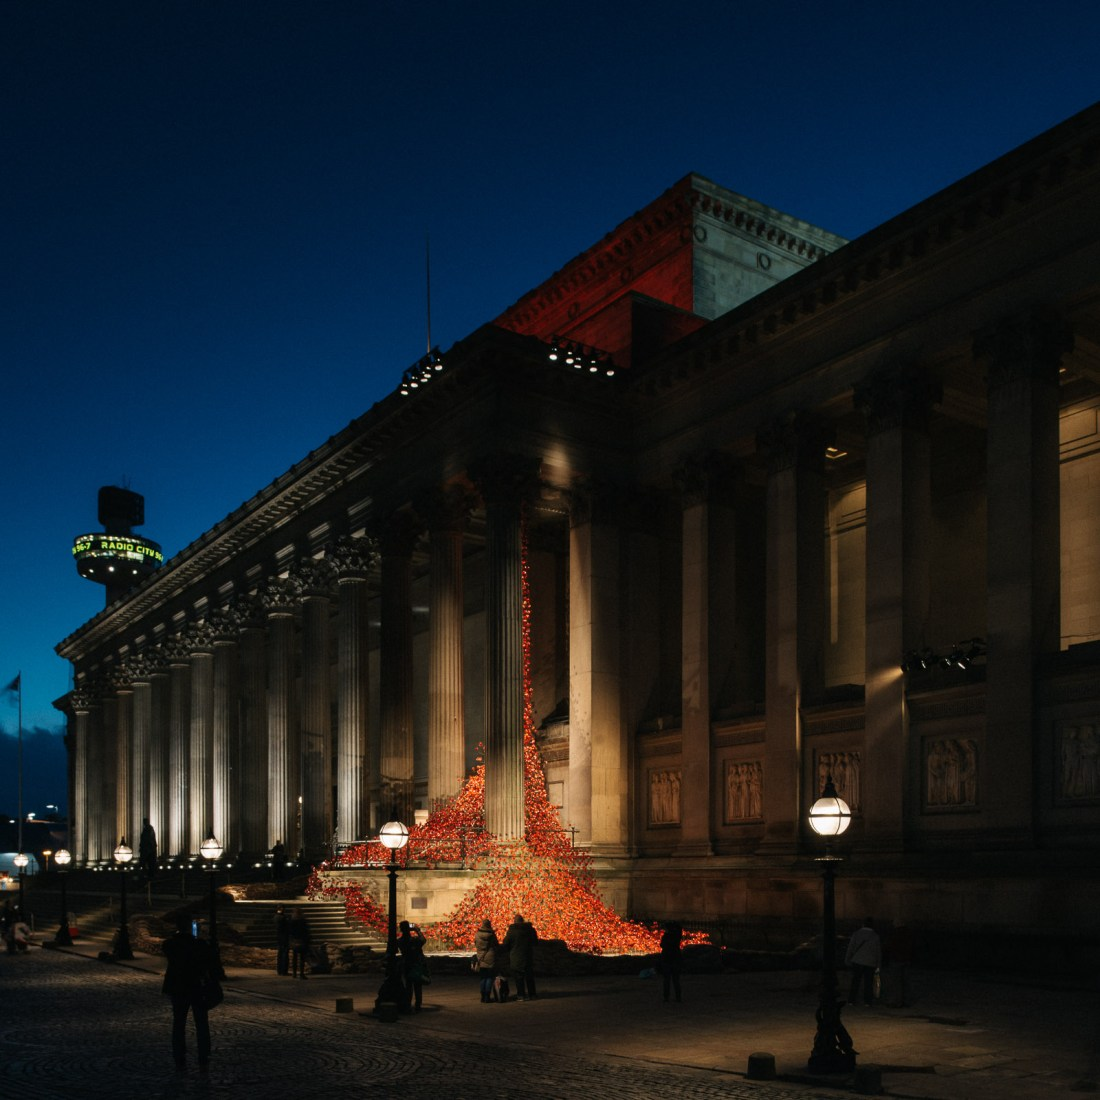 poppies-st-georges-hall-liverpool-3135-pete-carr